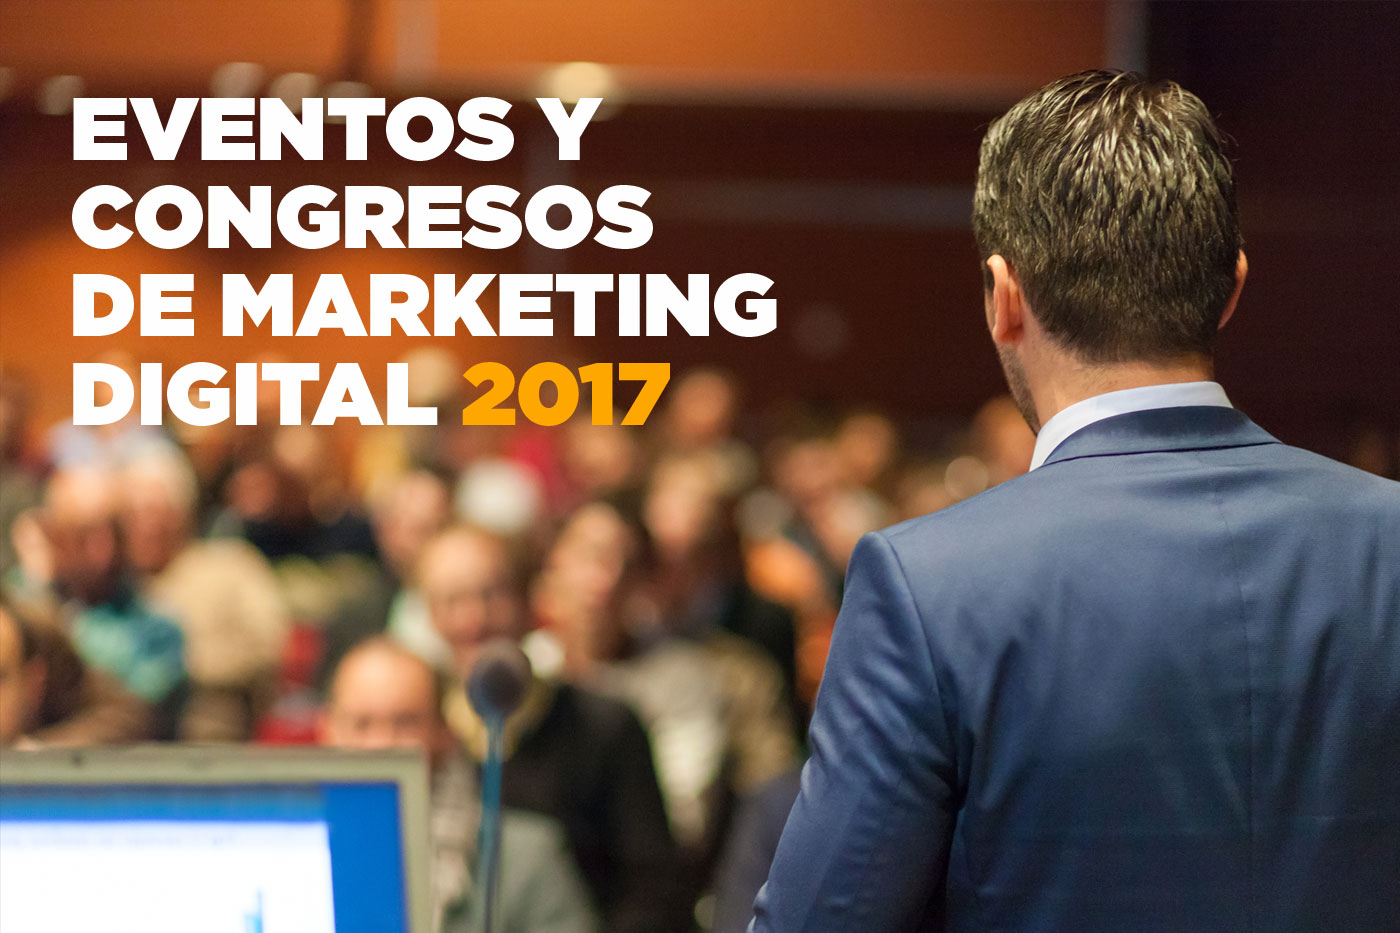 Congresos de Marketing Digital en 2017